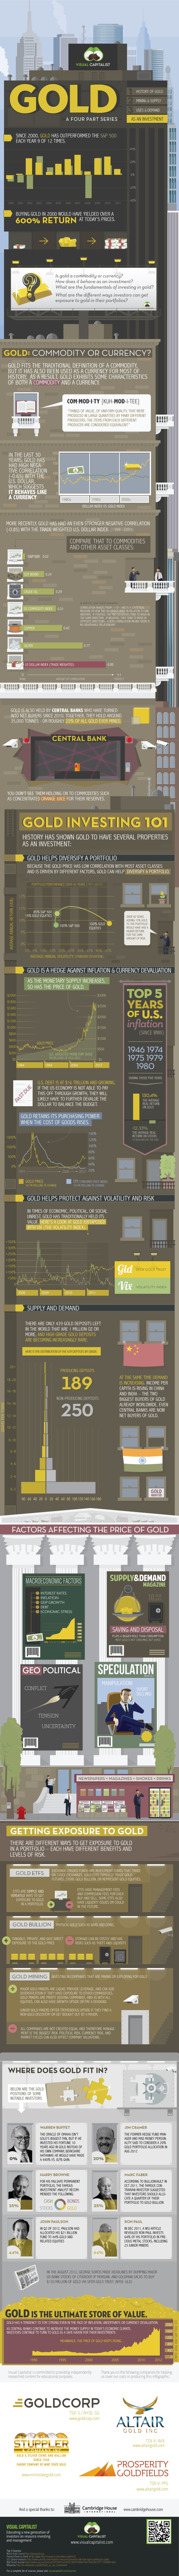 Gold as investment...Infographic